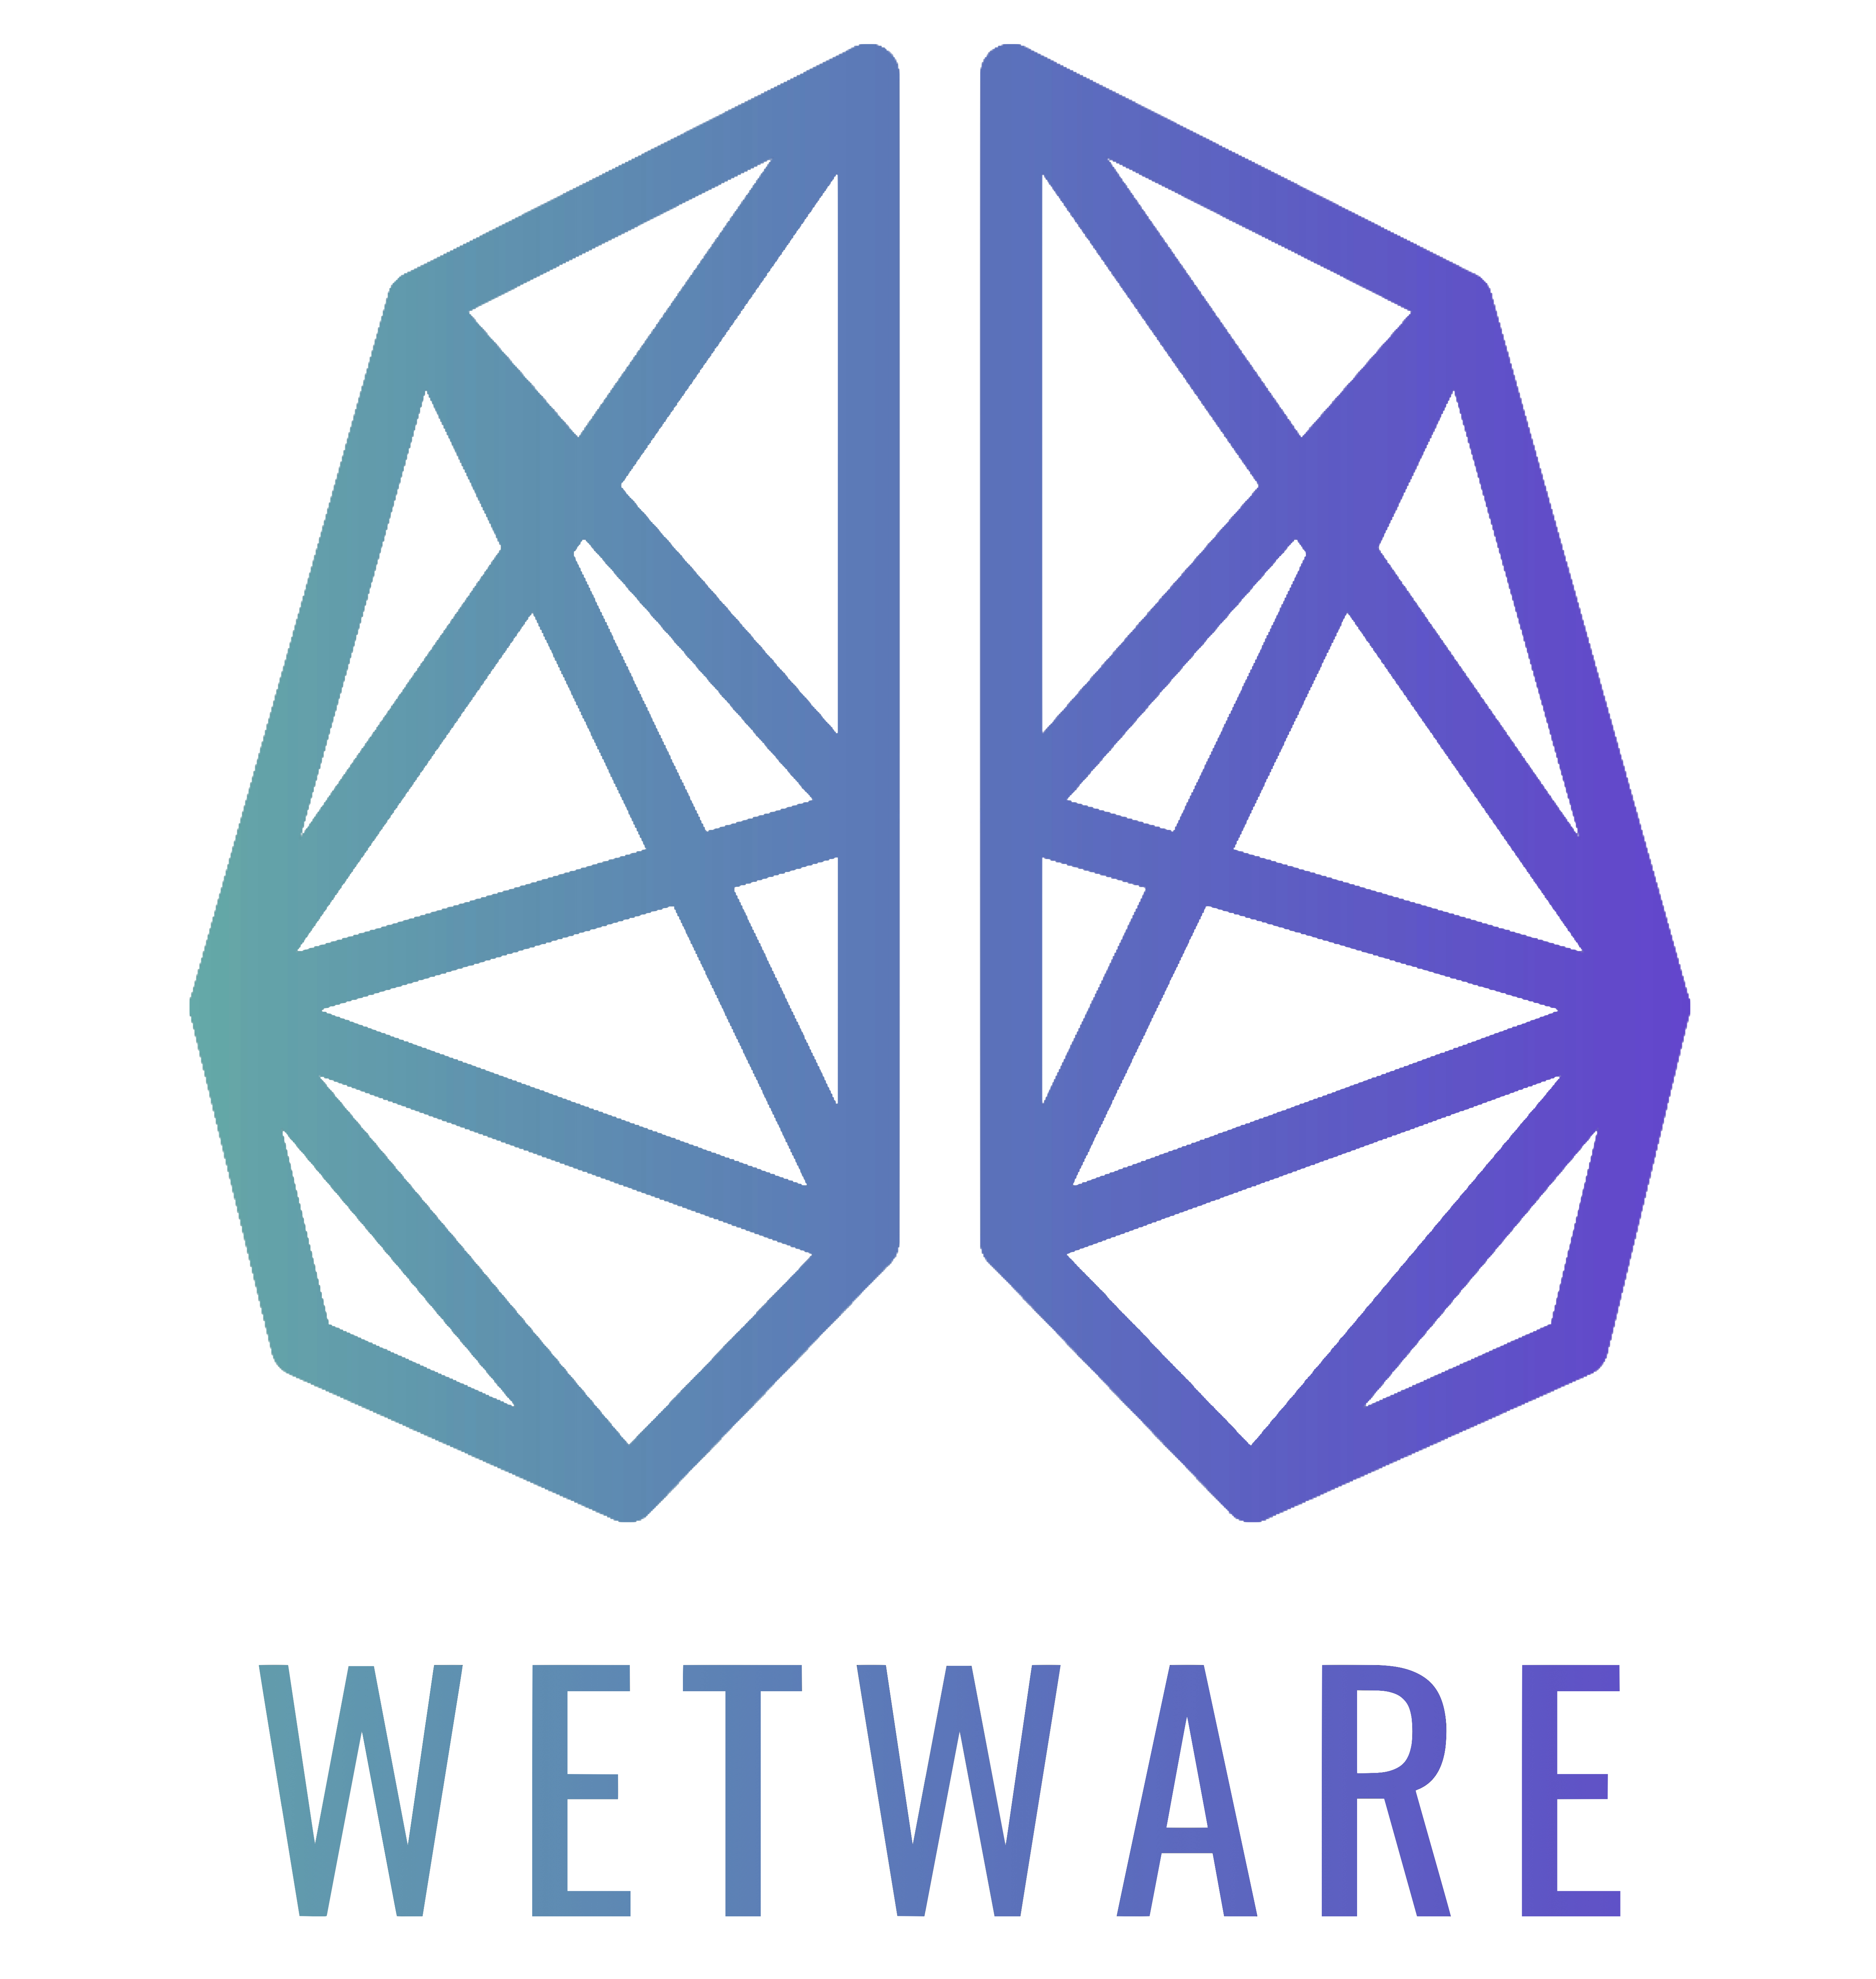 WetWare BioSystems Receives Defense Health Agency Research Award